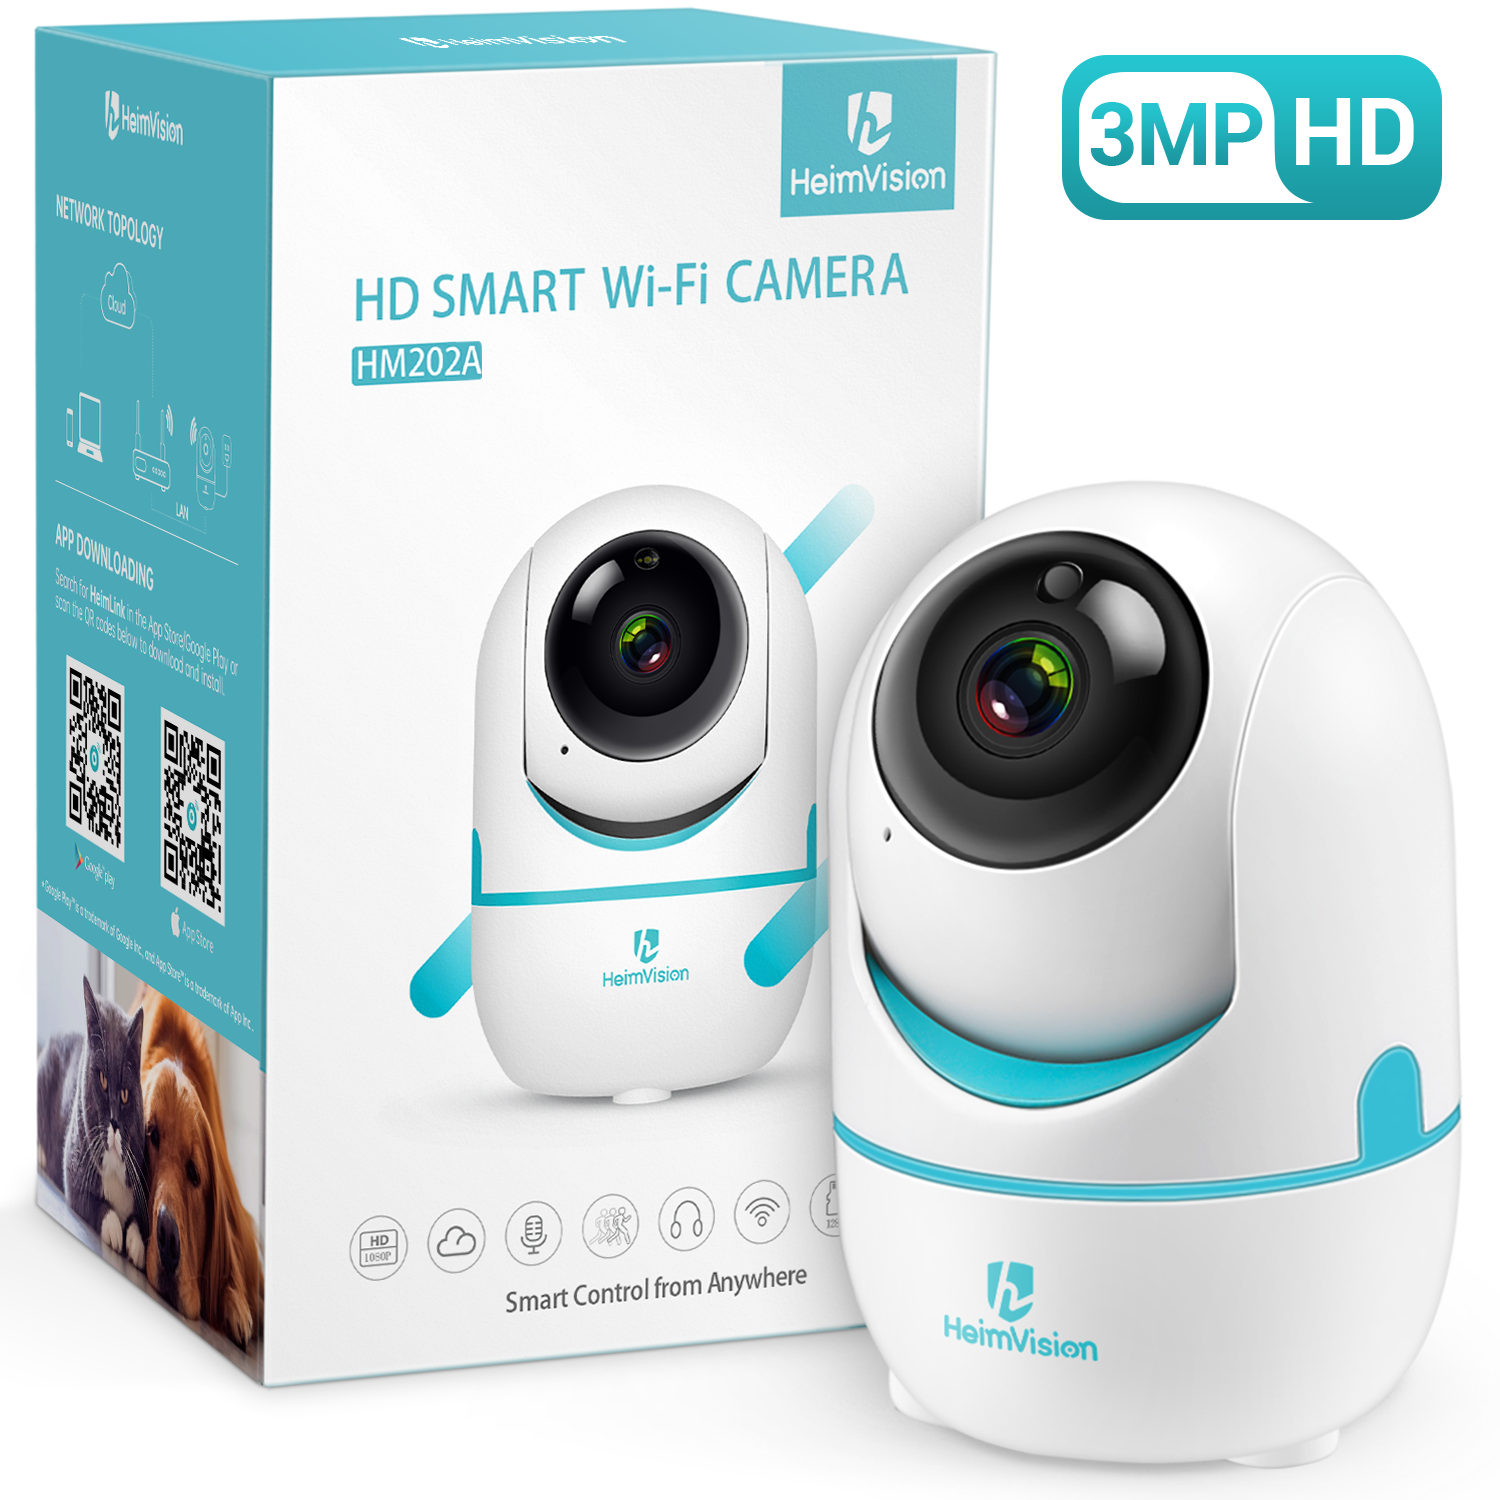 HeimVision HM202A Wireless Security Camera